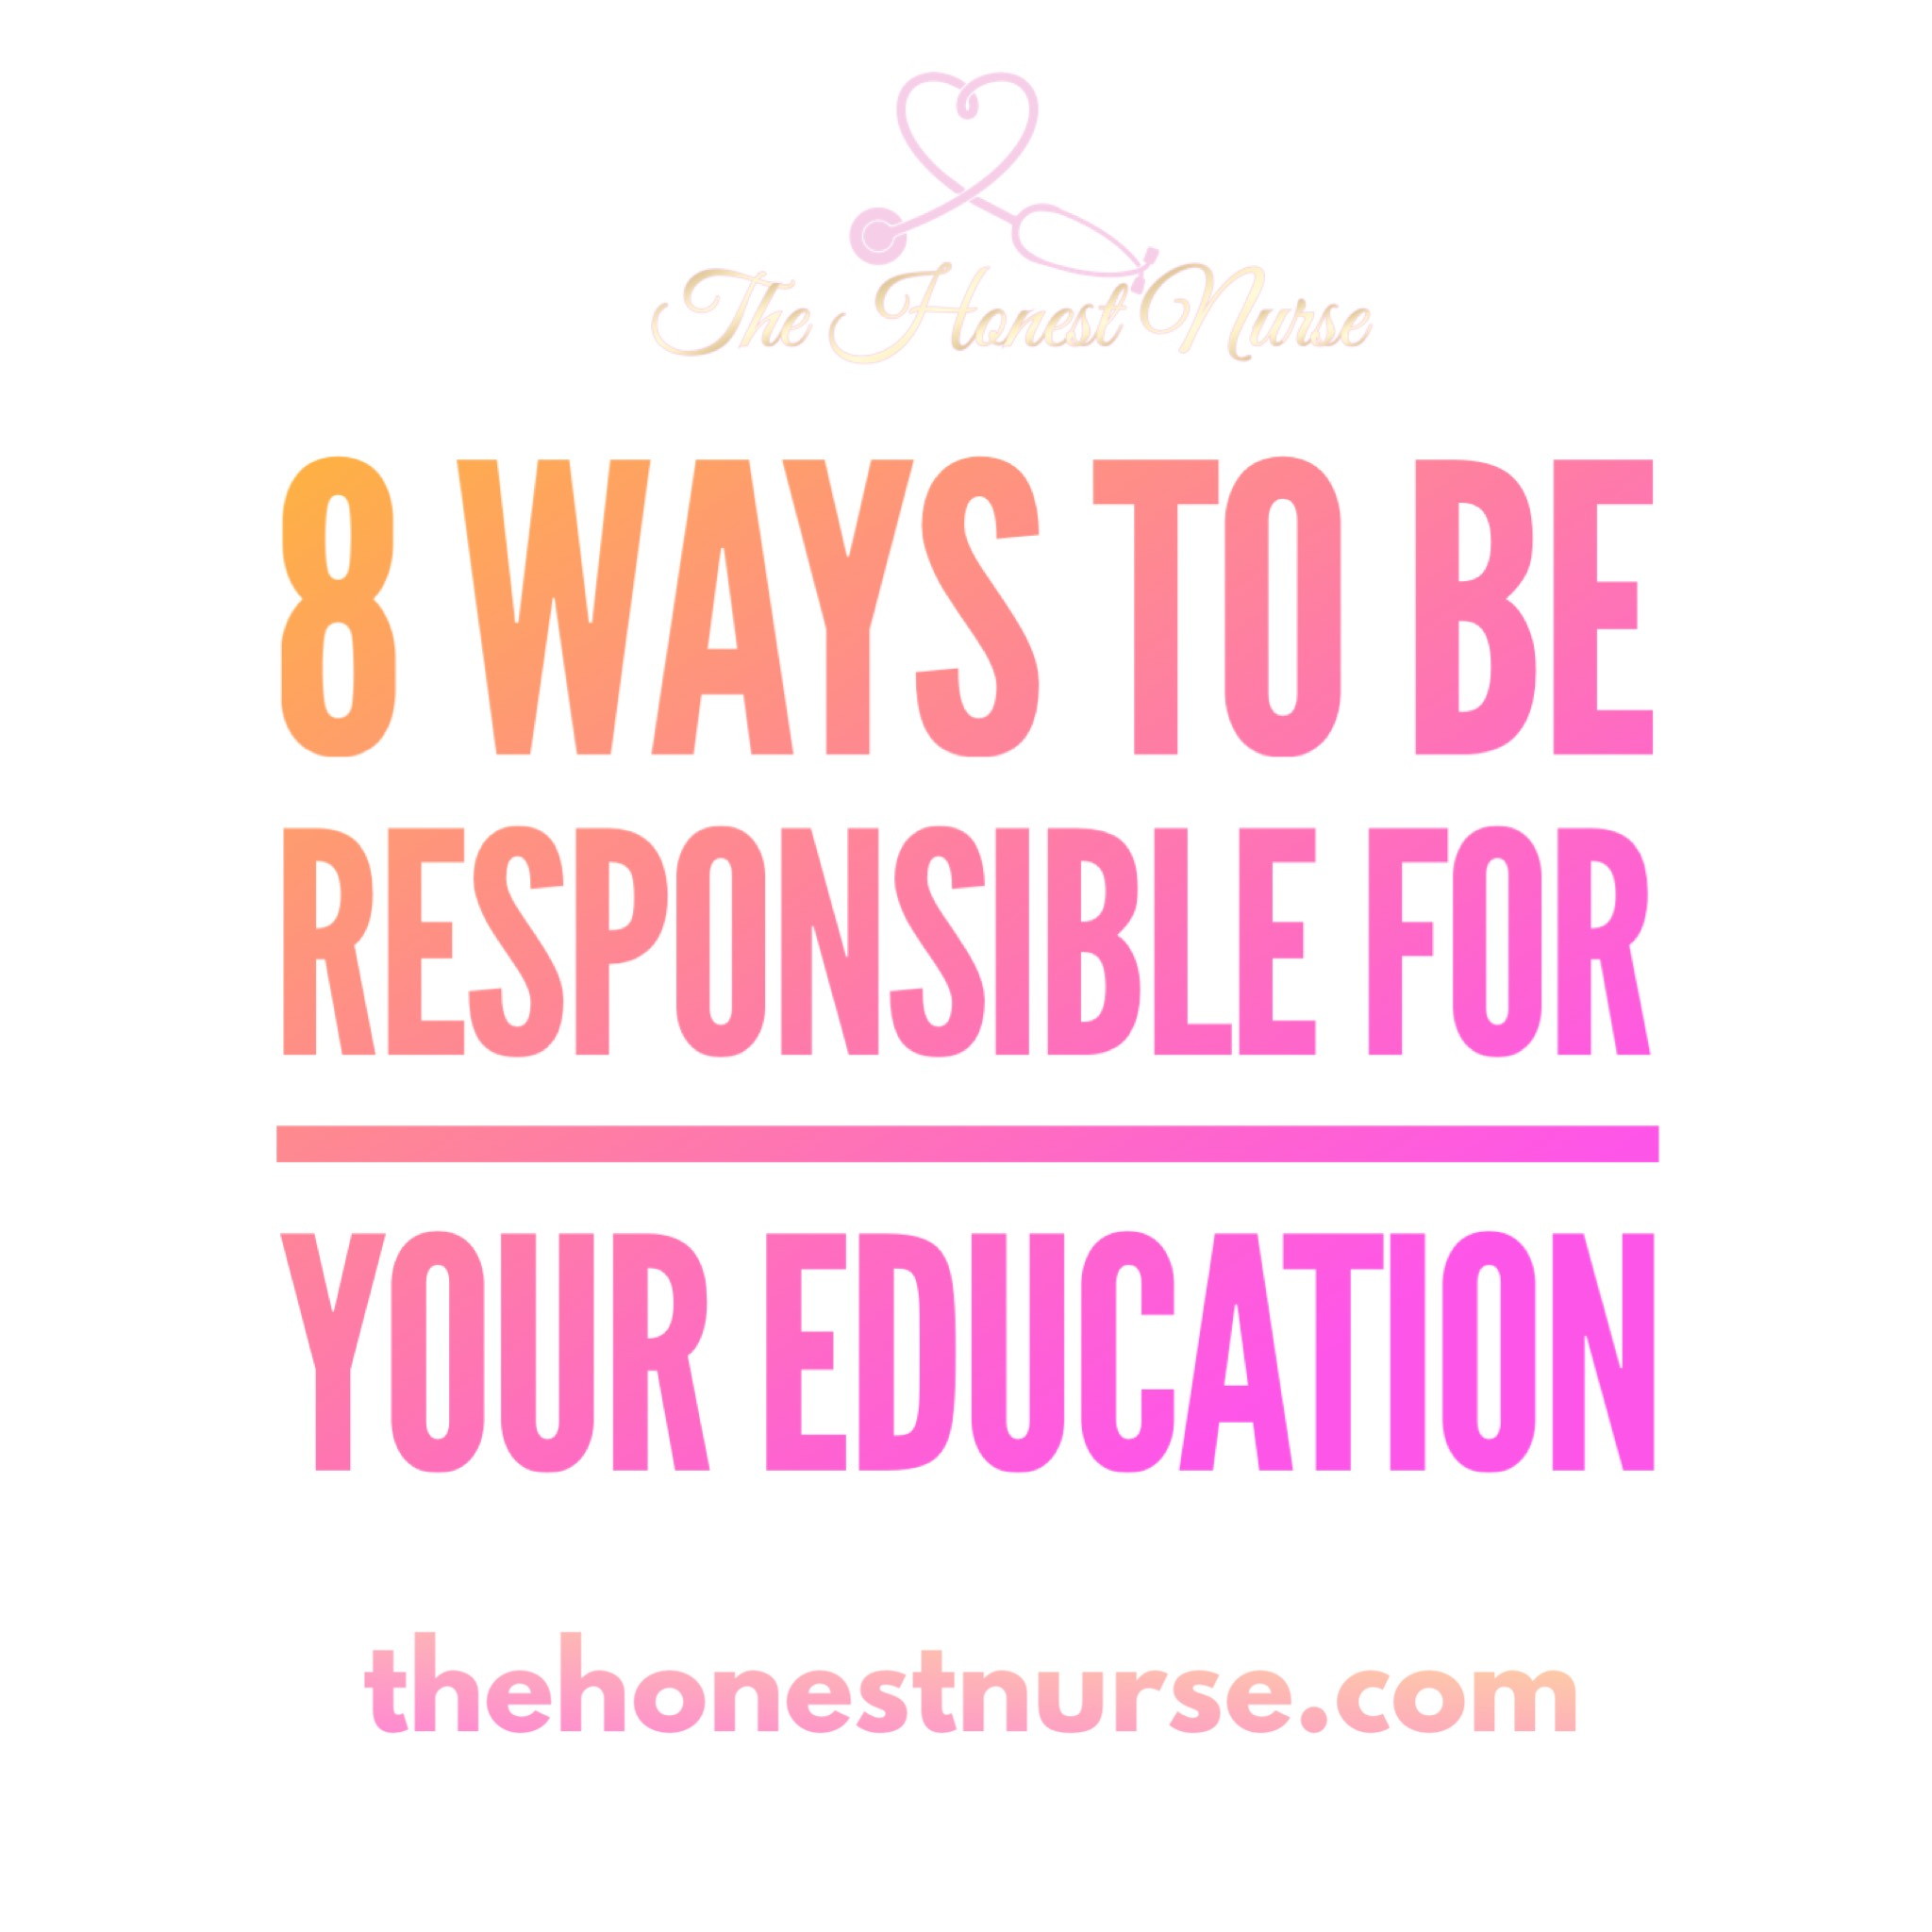 14. 8 Ways to be responsible for your education - So you thought once you completed nursing school that was it? Surprise! Now you need to navigate orientation, residency, and your first year as a nurse all the while focusing on being a safe and competent nurse. If I had one takeaway from orientation it is this: Do not rely on others to provide your orientation experience. Be proactive, go out there, and learn!